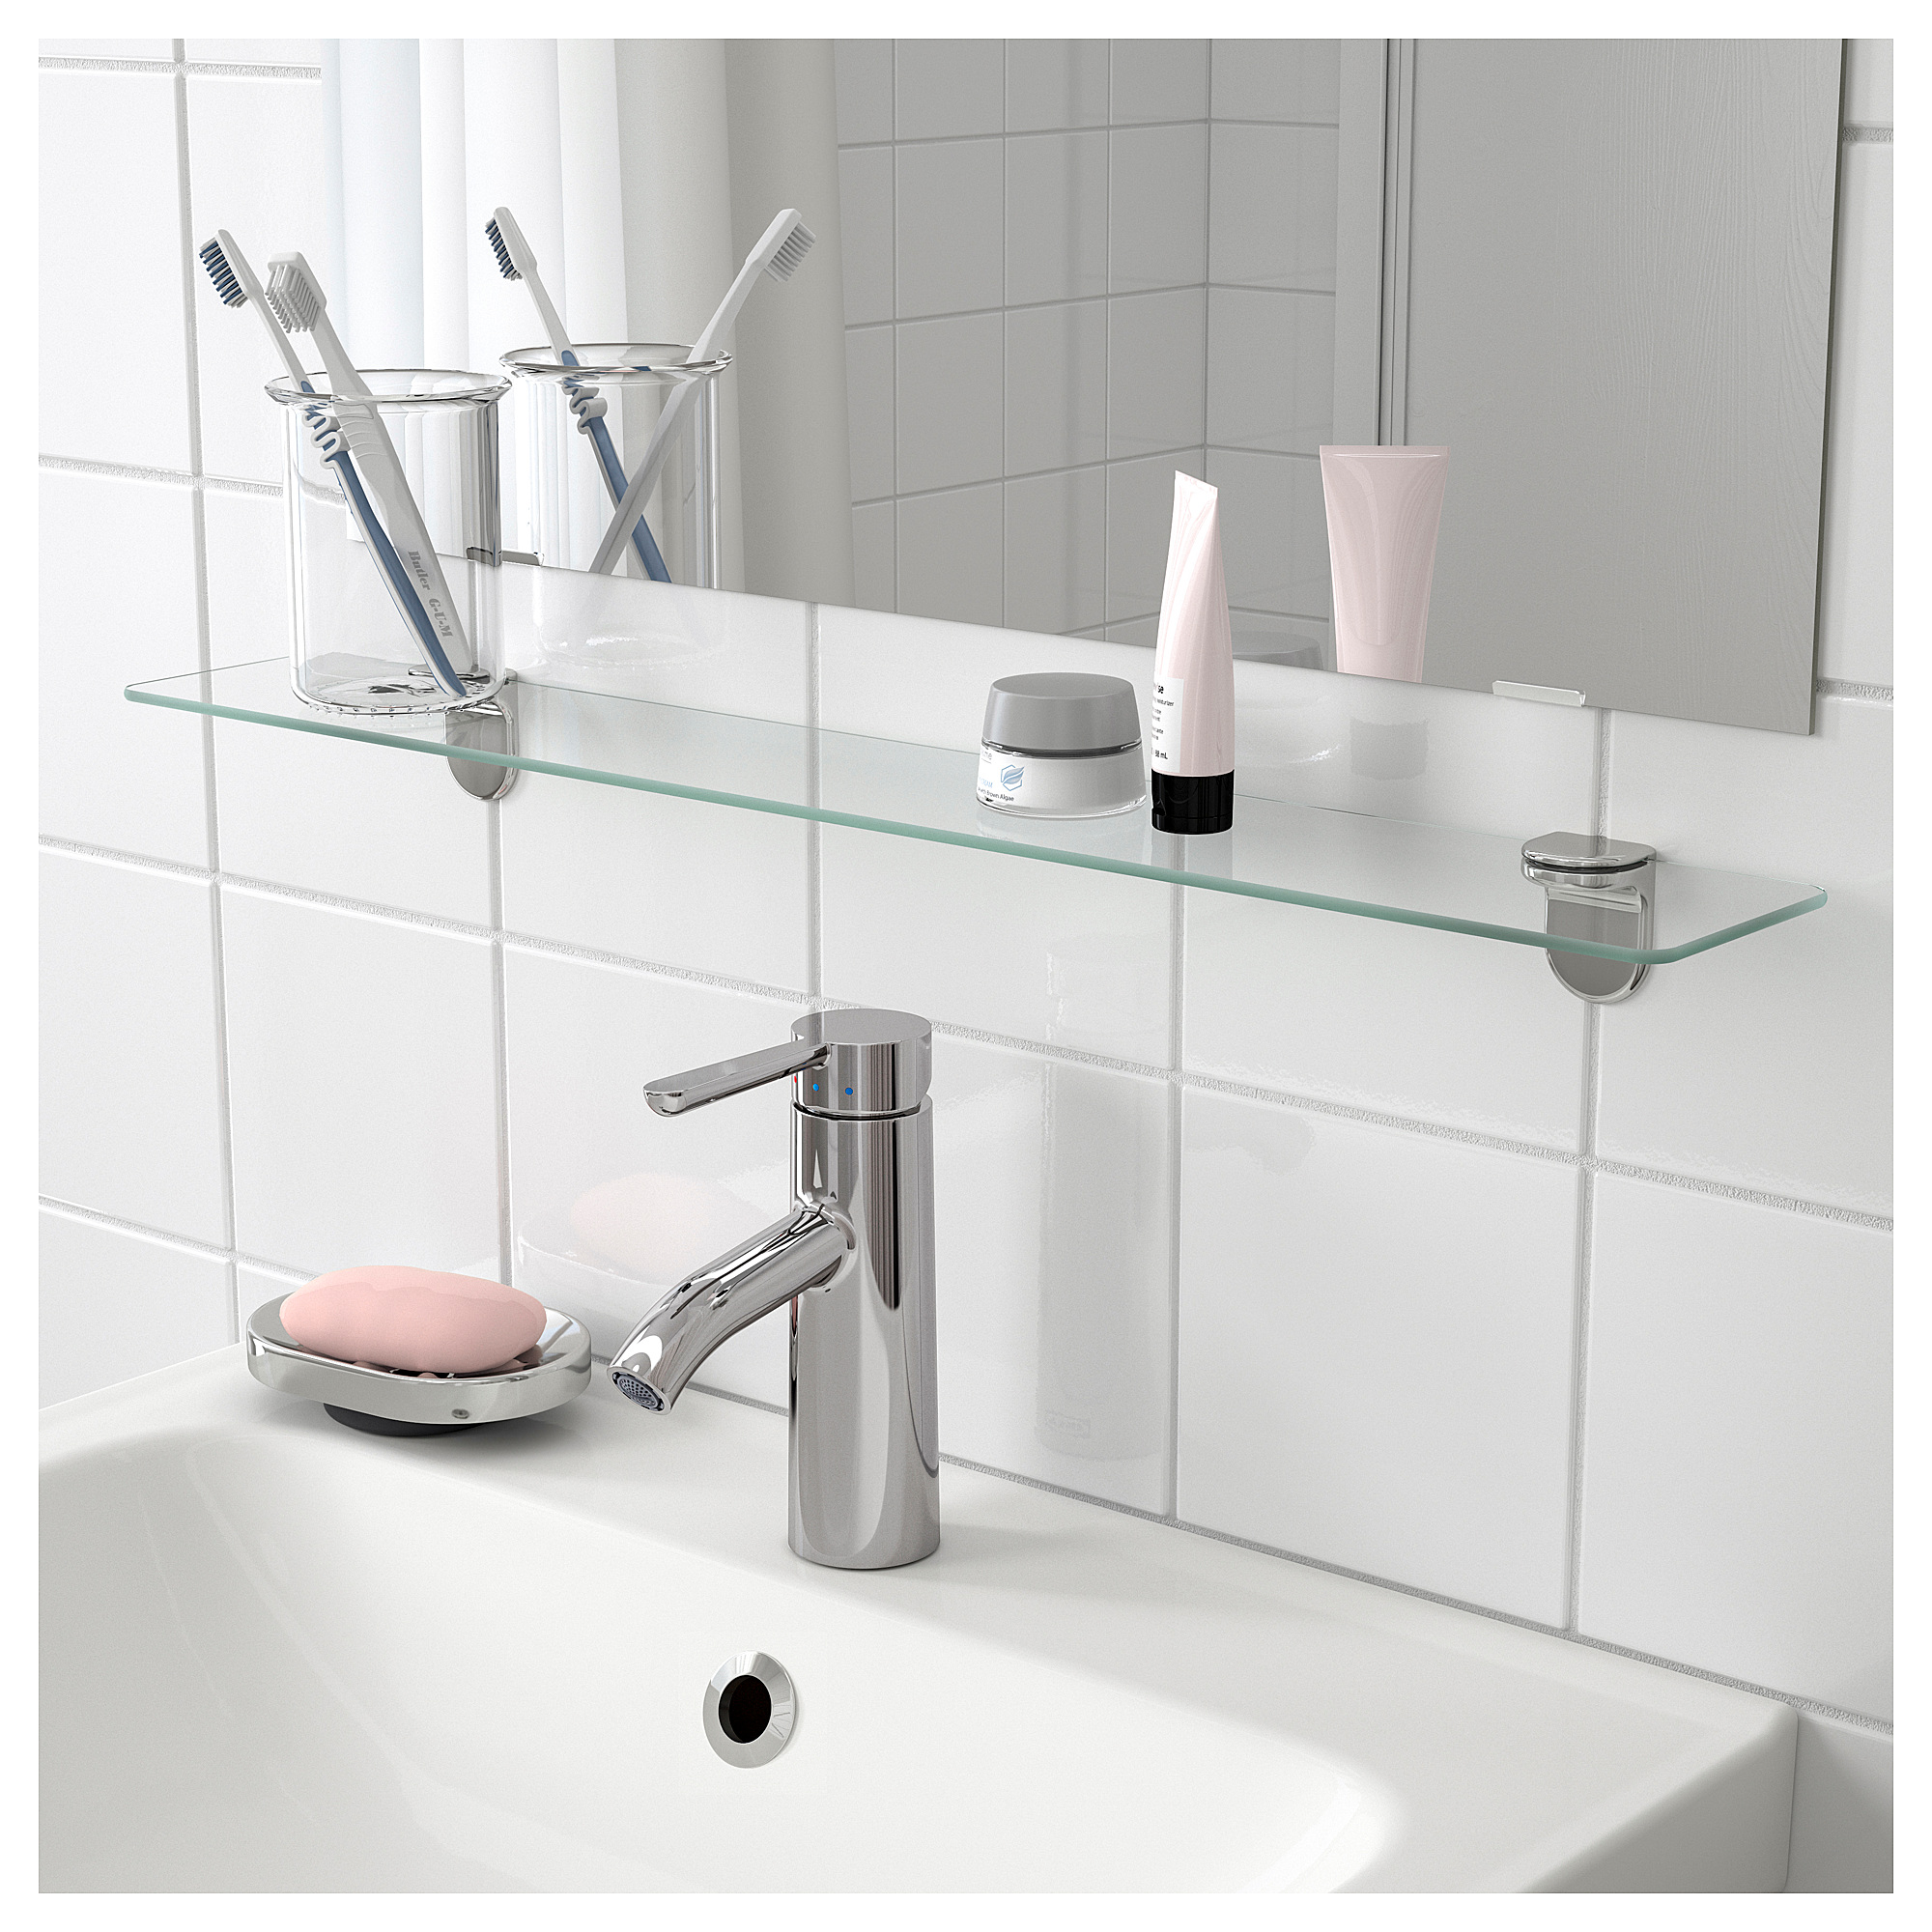 Bathroom Glass Shelves stunning design glass shelves for bathroom madrigalibz site CKUPBQD